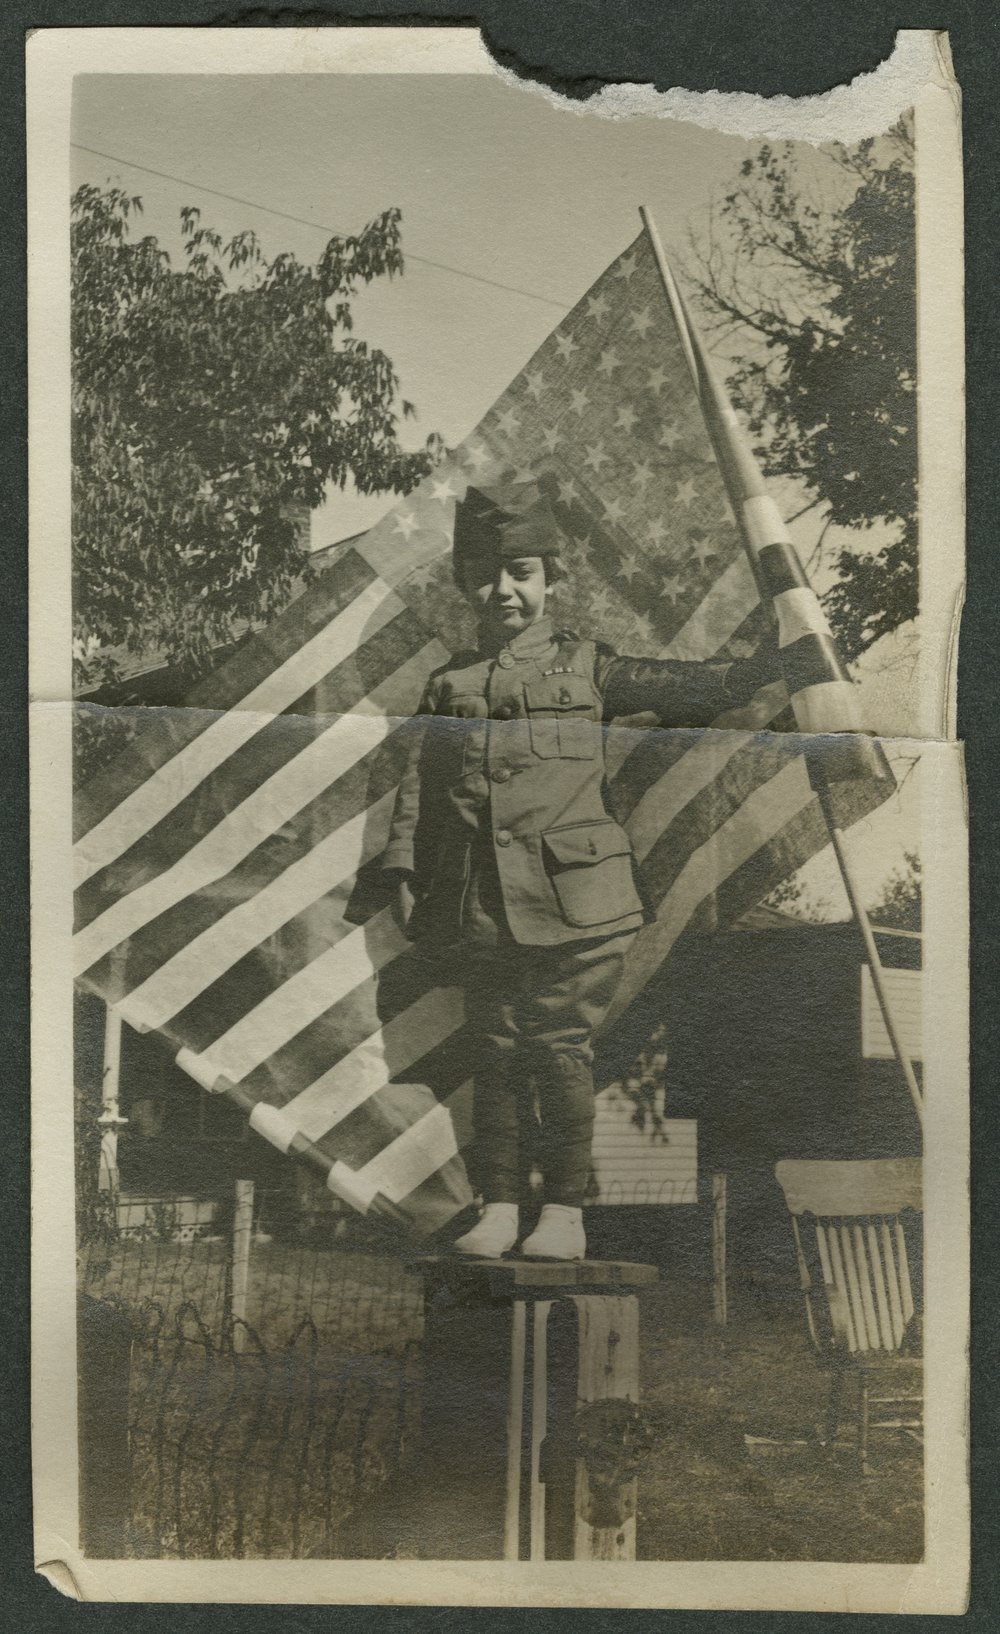 Child wearing a World War I uniform and holding a flag in Kinsley, Kansas